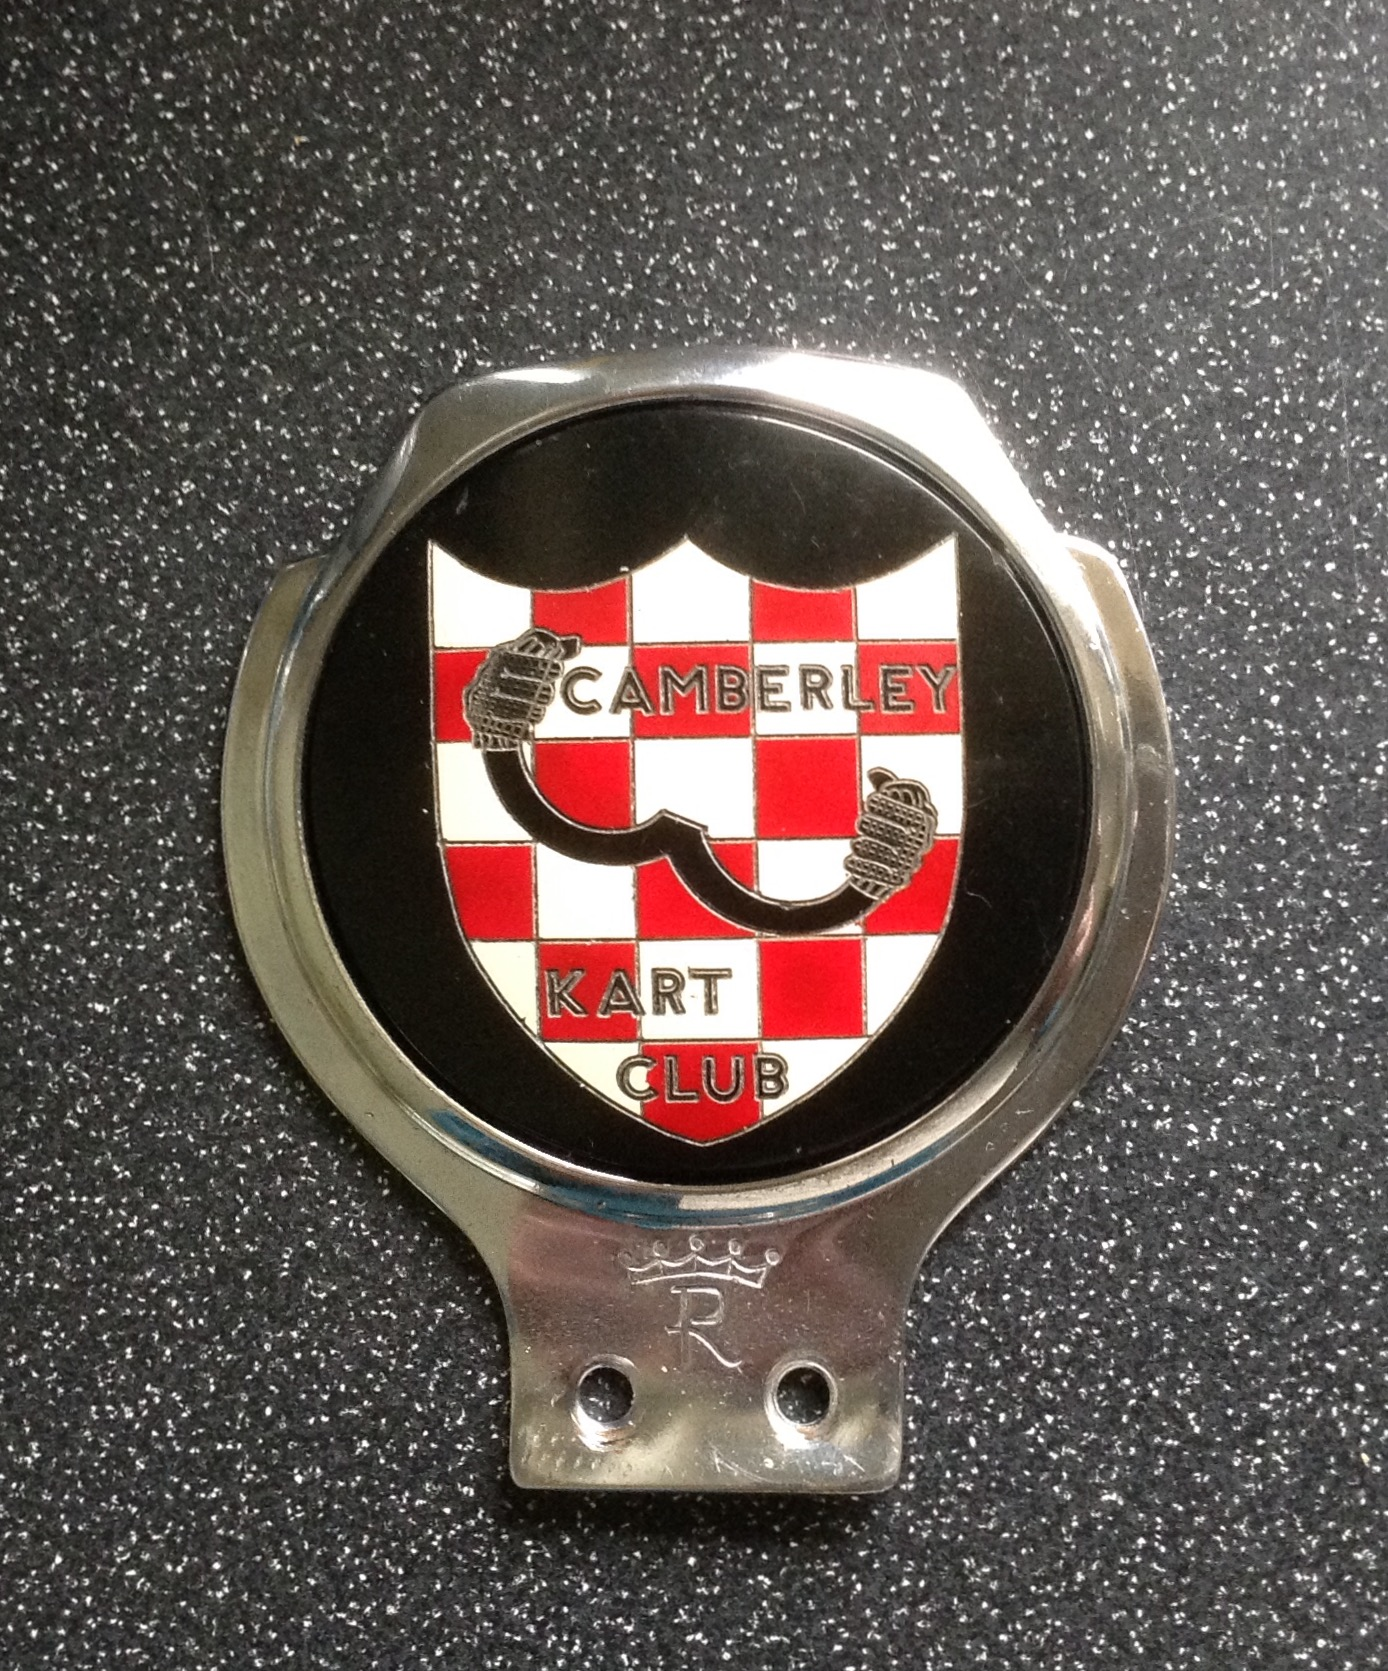 2nd CAMBERLEY KART CLUB CAR BADGE